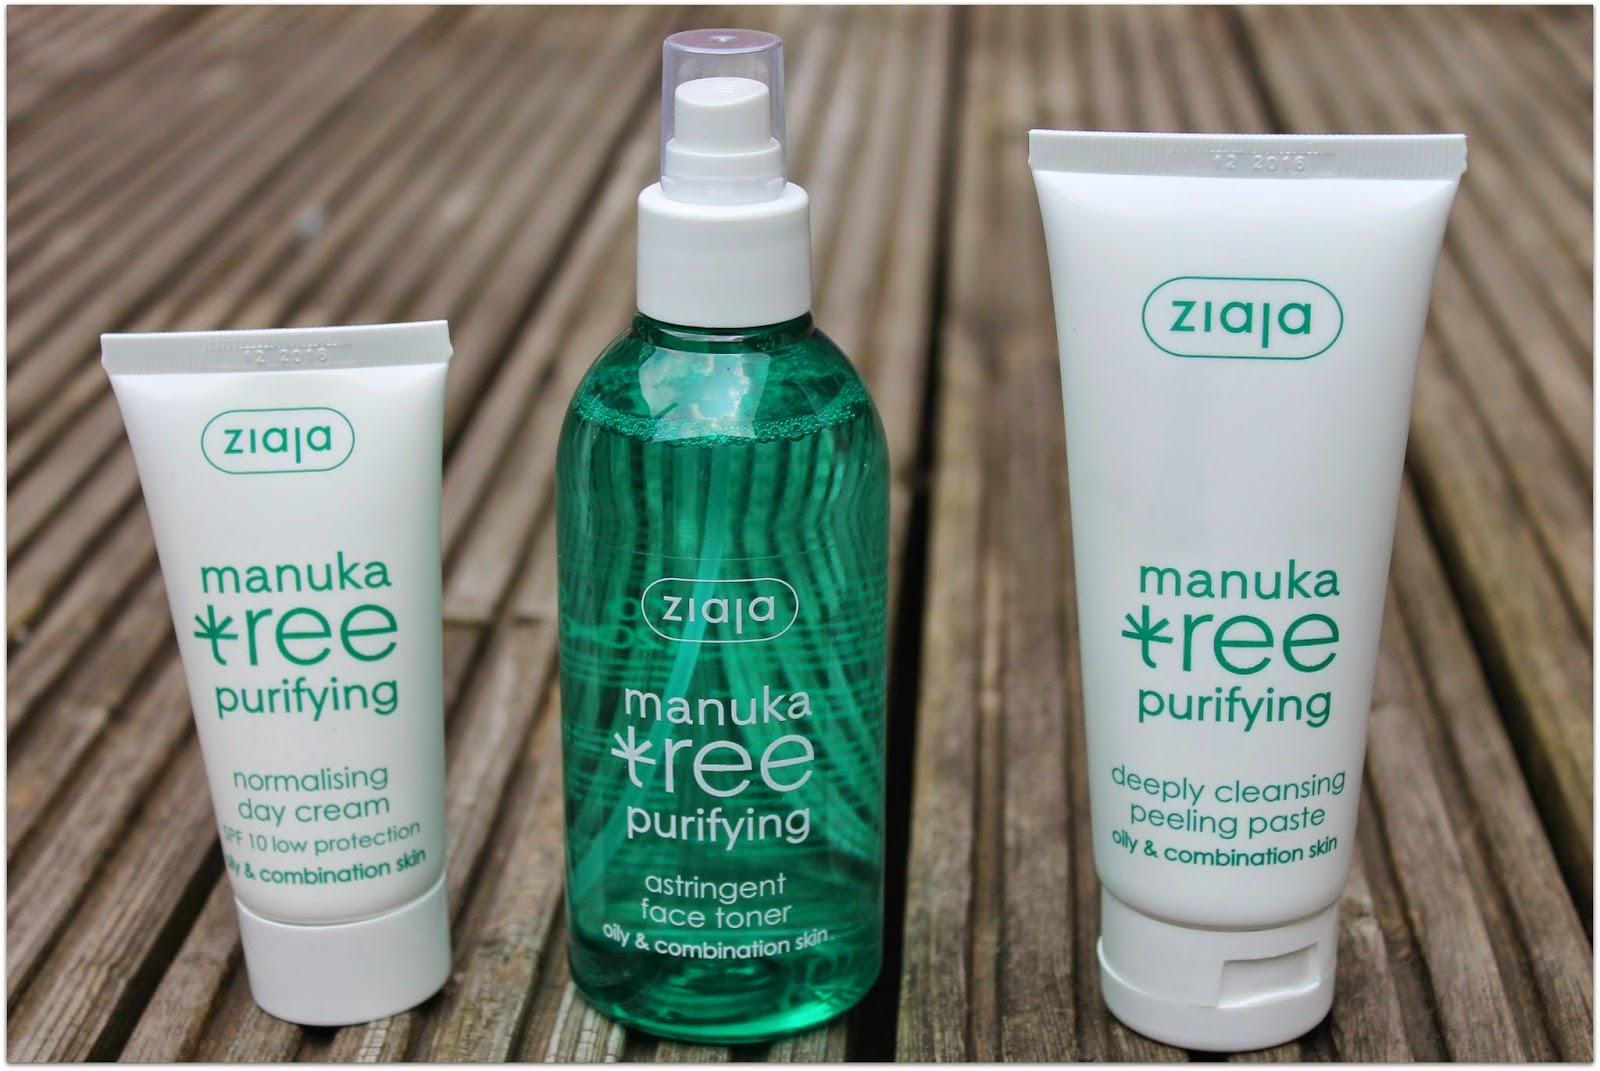 Ziaja Manuka Tree Purifying Range